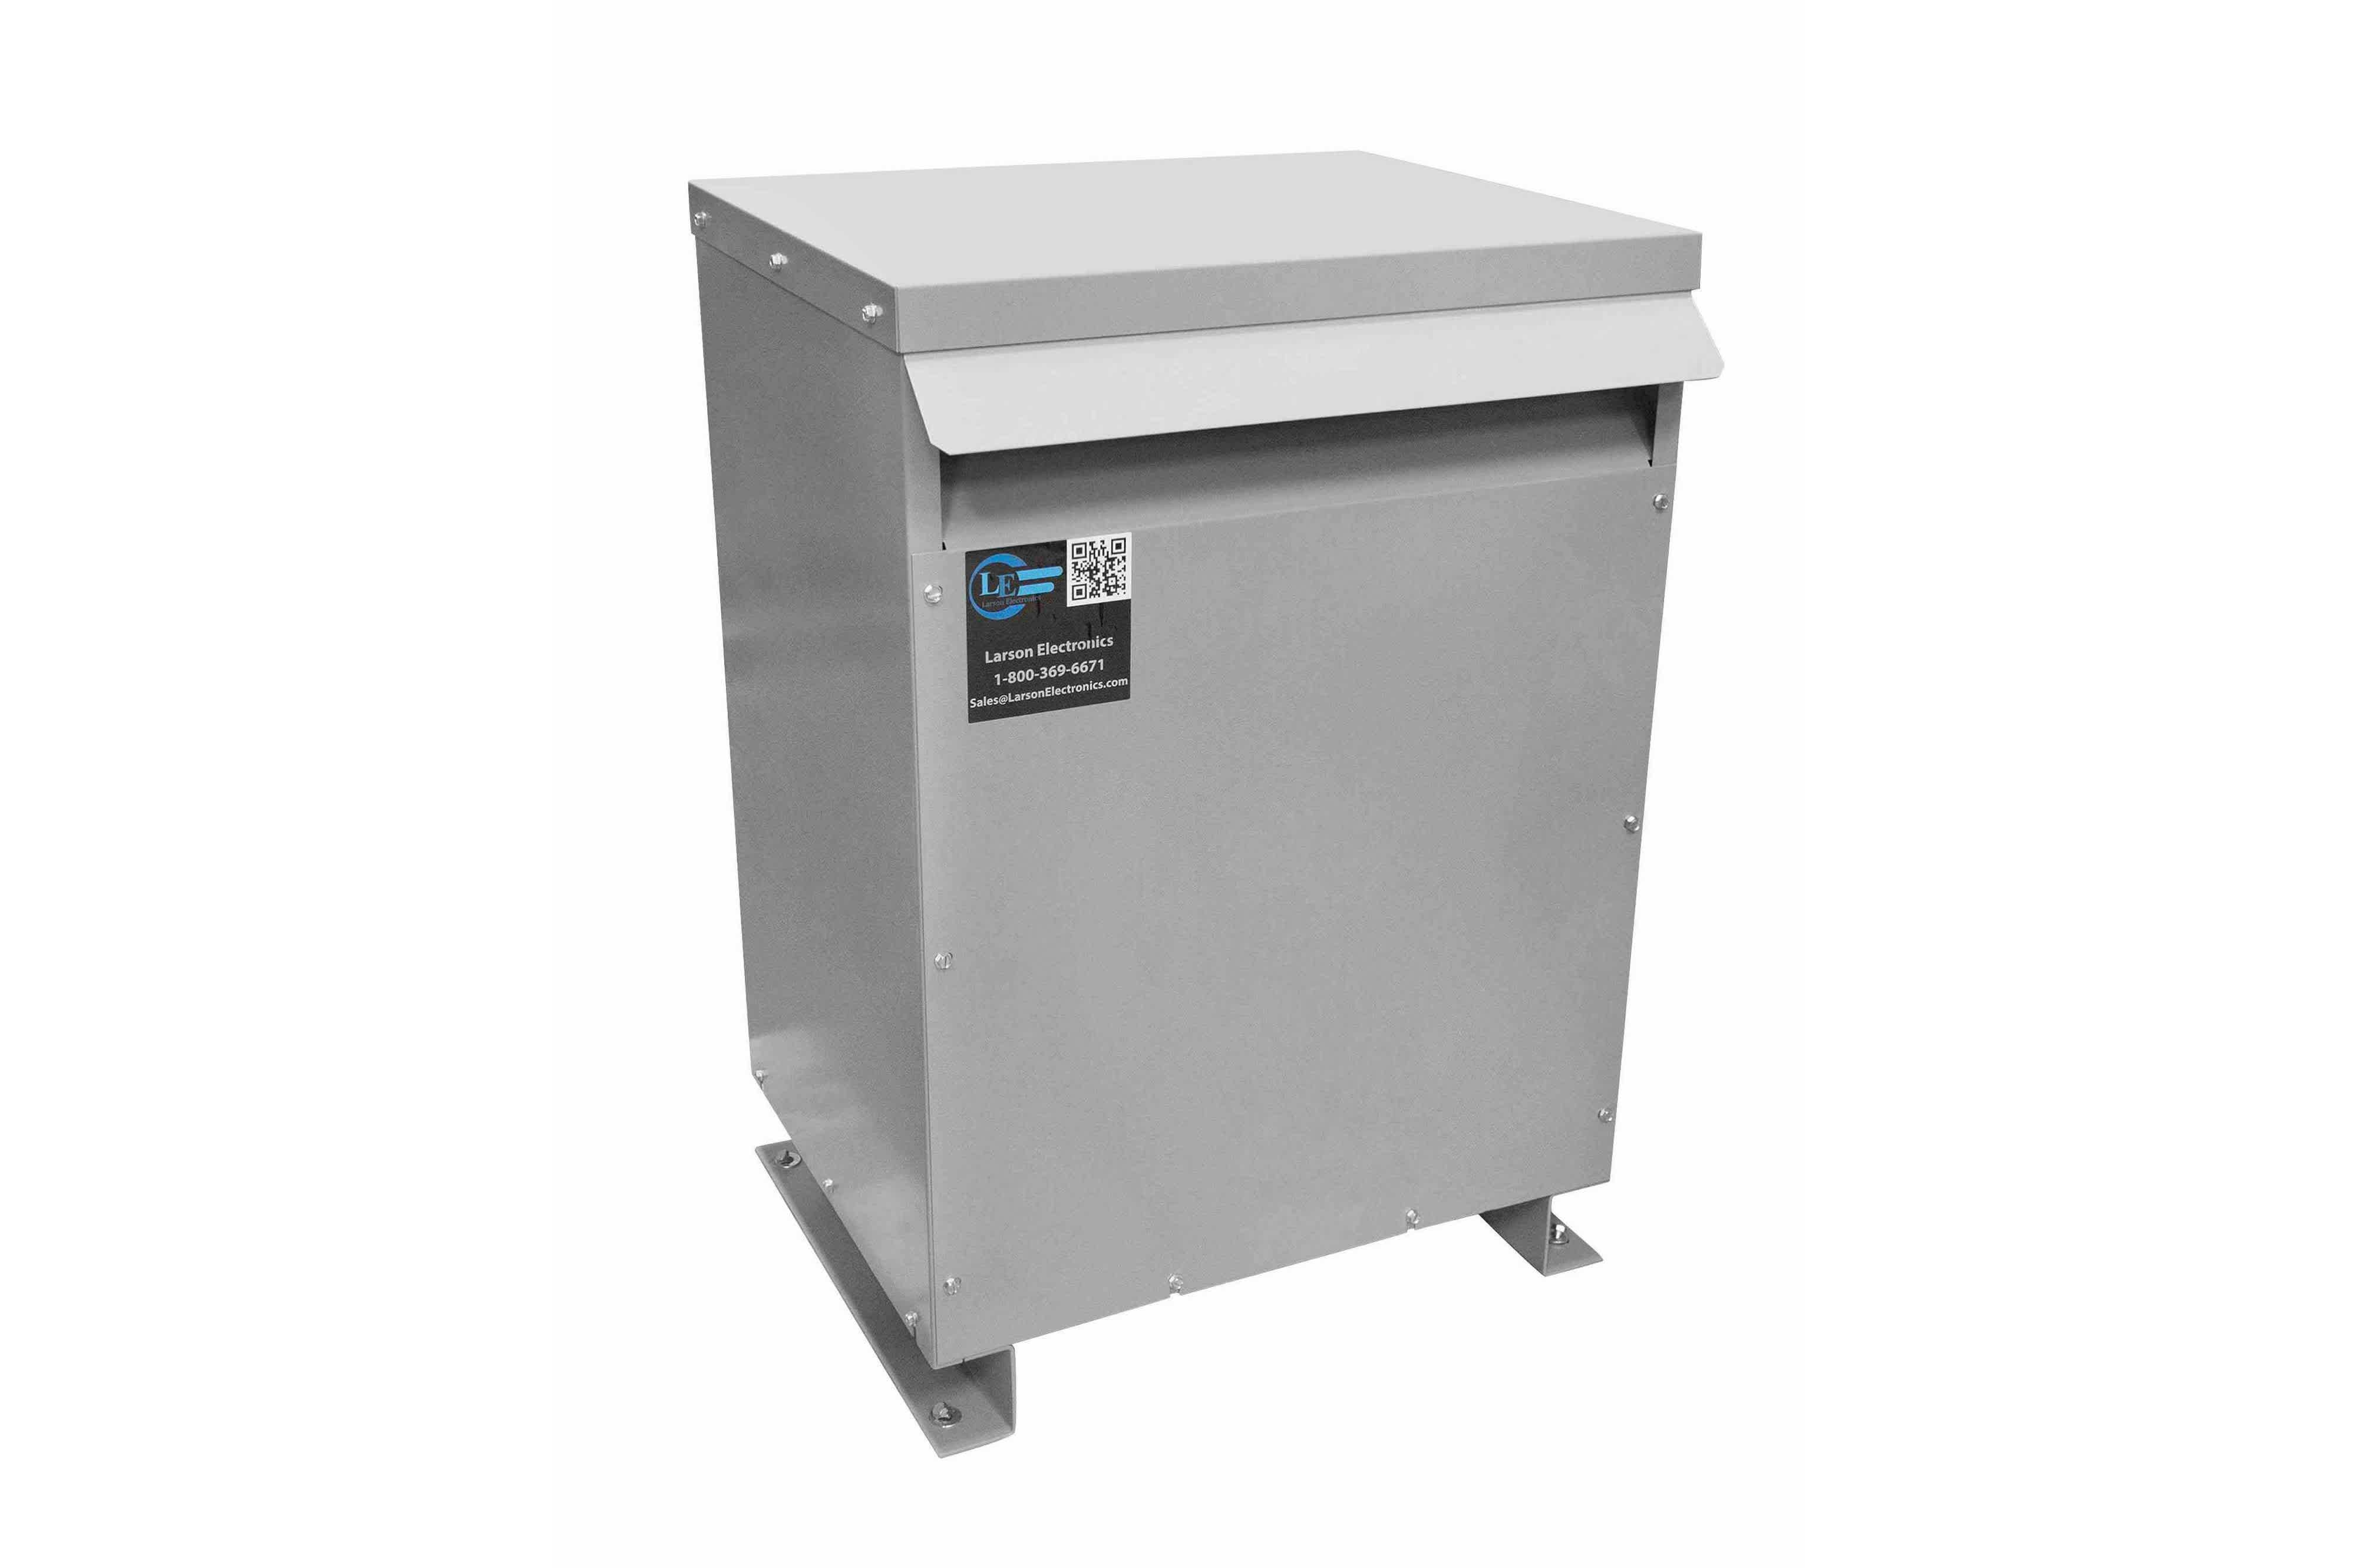 70 kVA 3PH Isolation Transformer, 240V Wye Primary, 480V Delta Secondary, N3R, Ventilated, 60 Hz